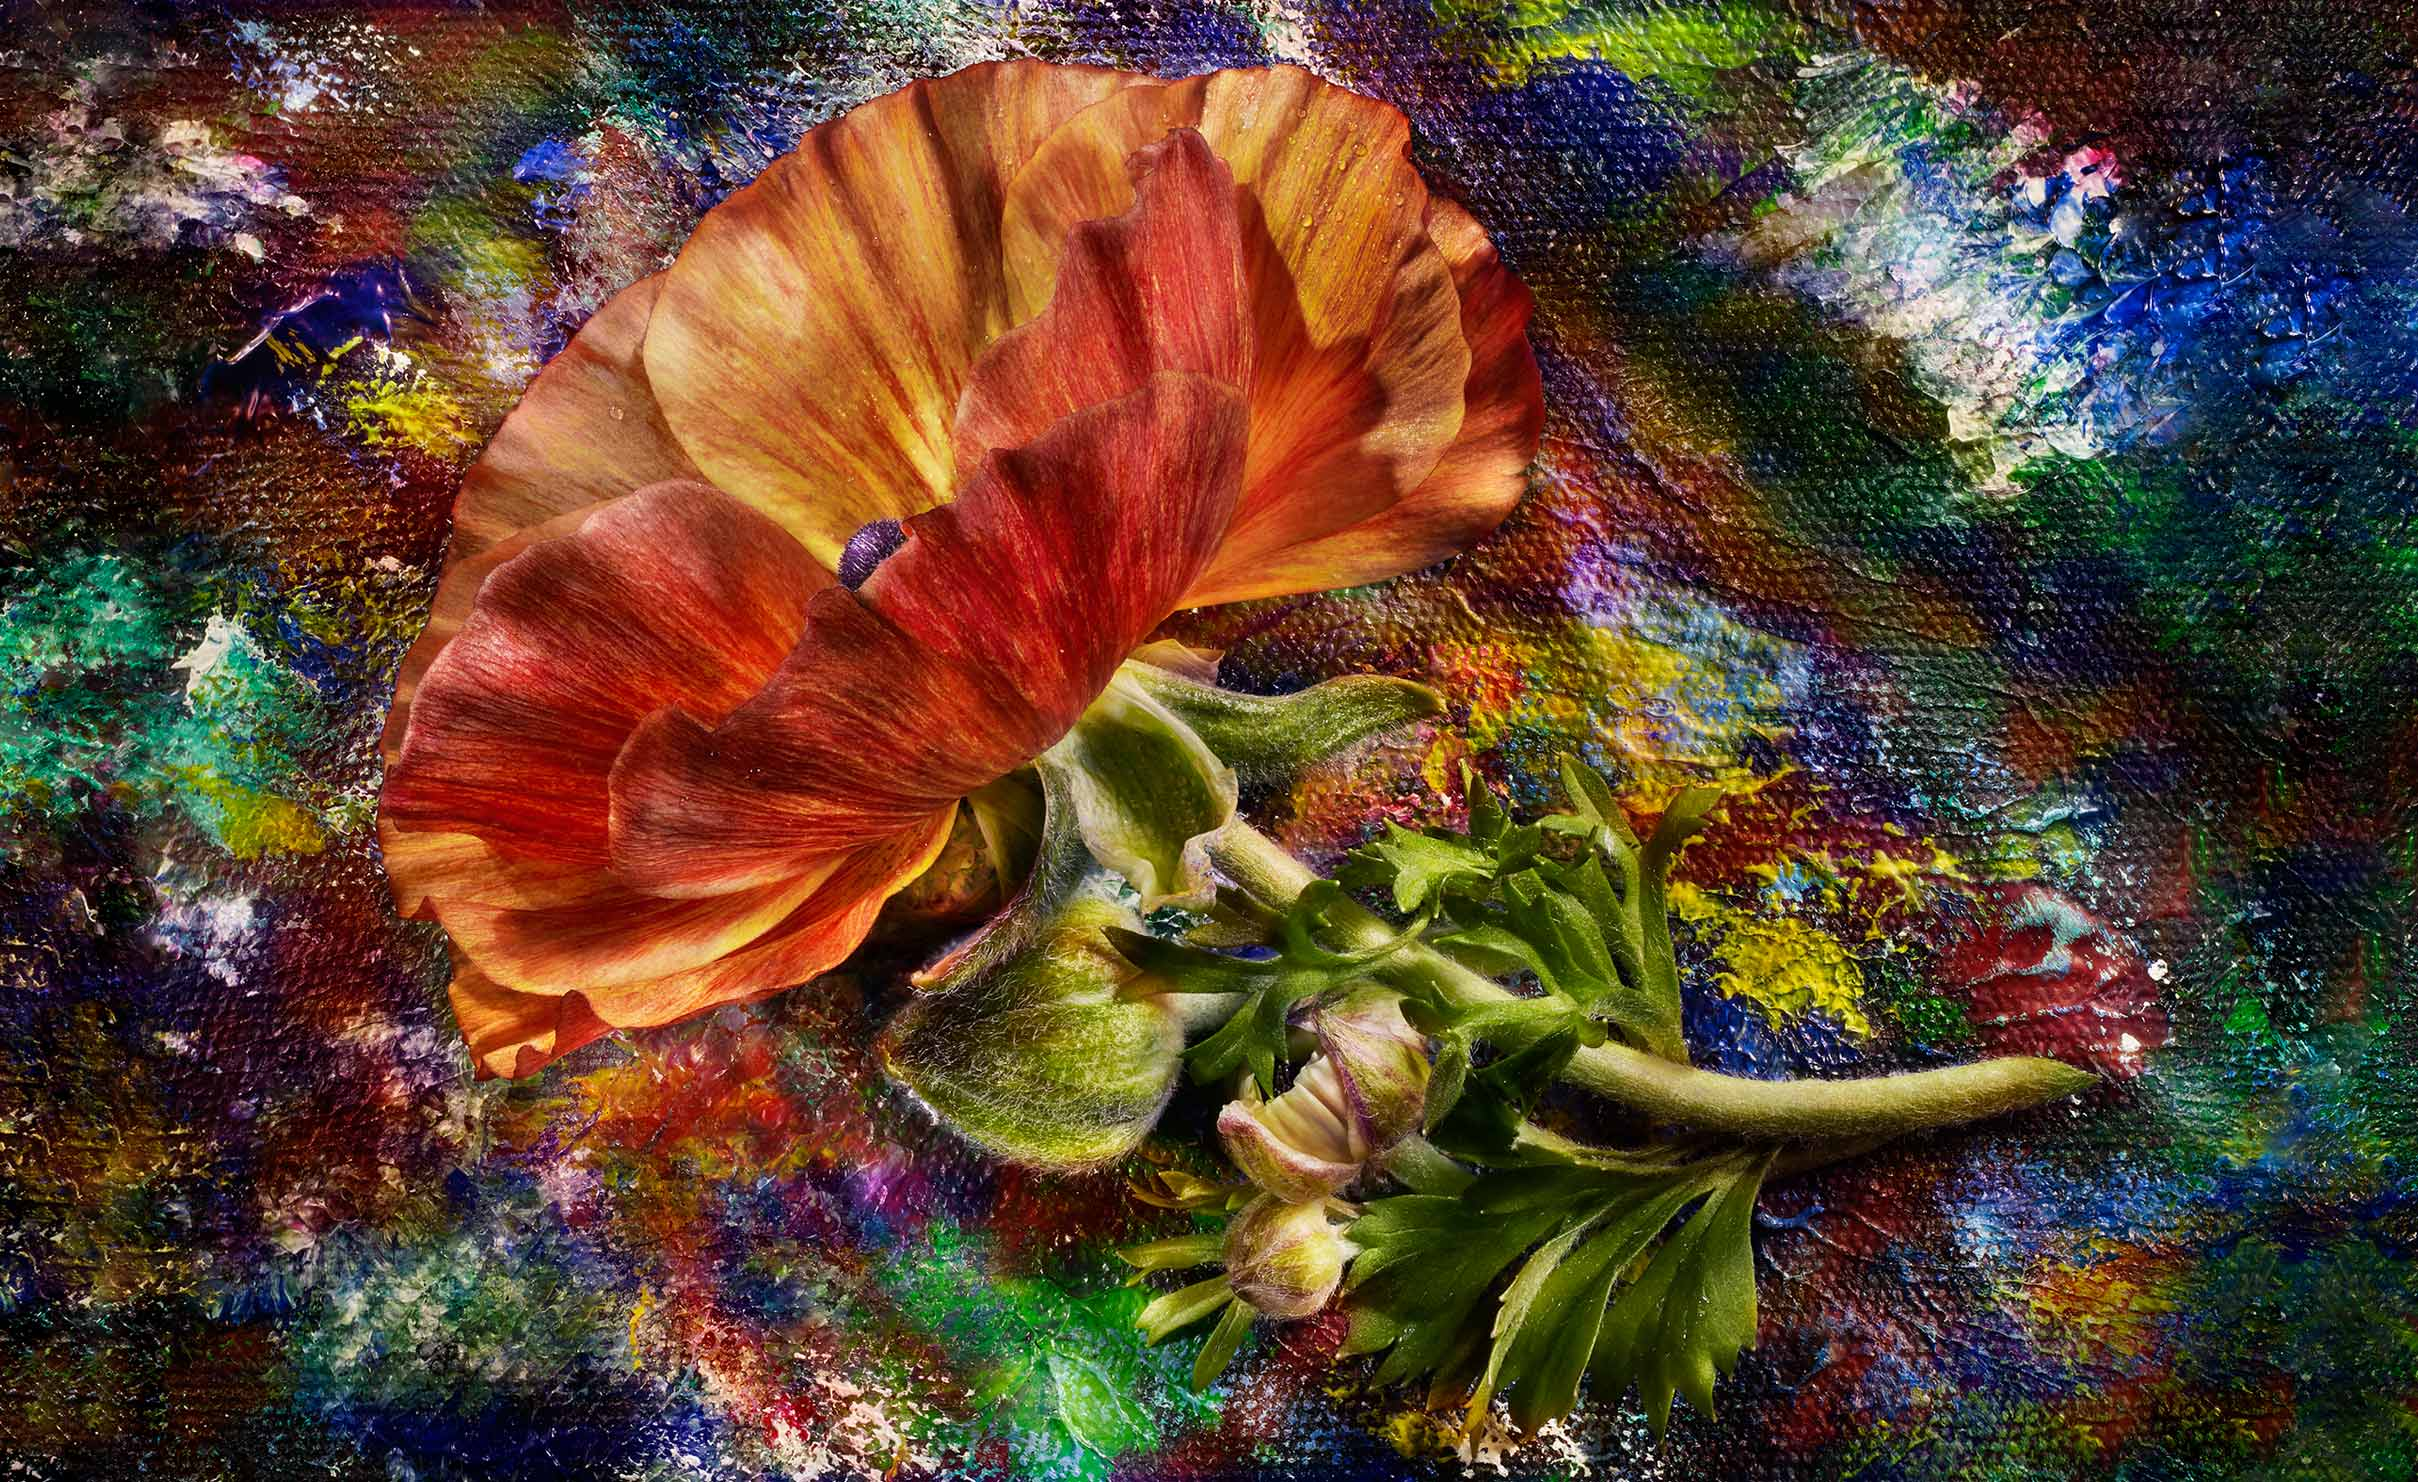 edible  painterly orange poppy flower  shot on a painted background